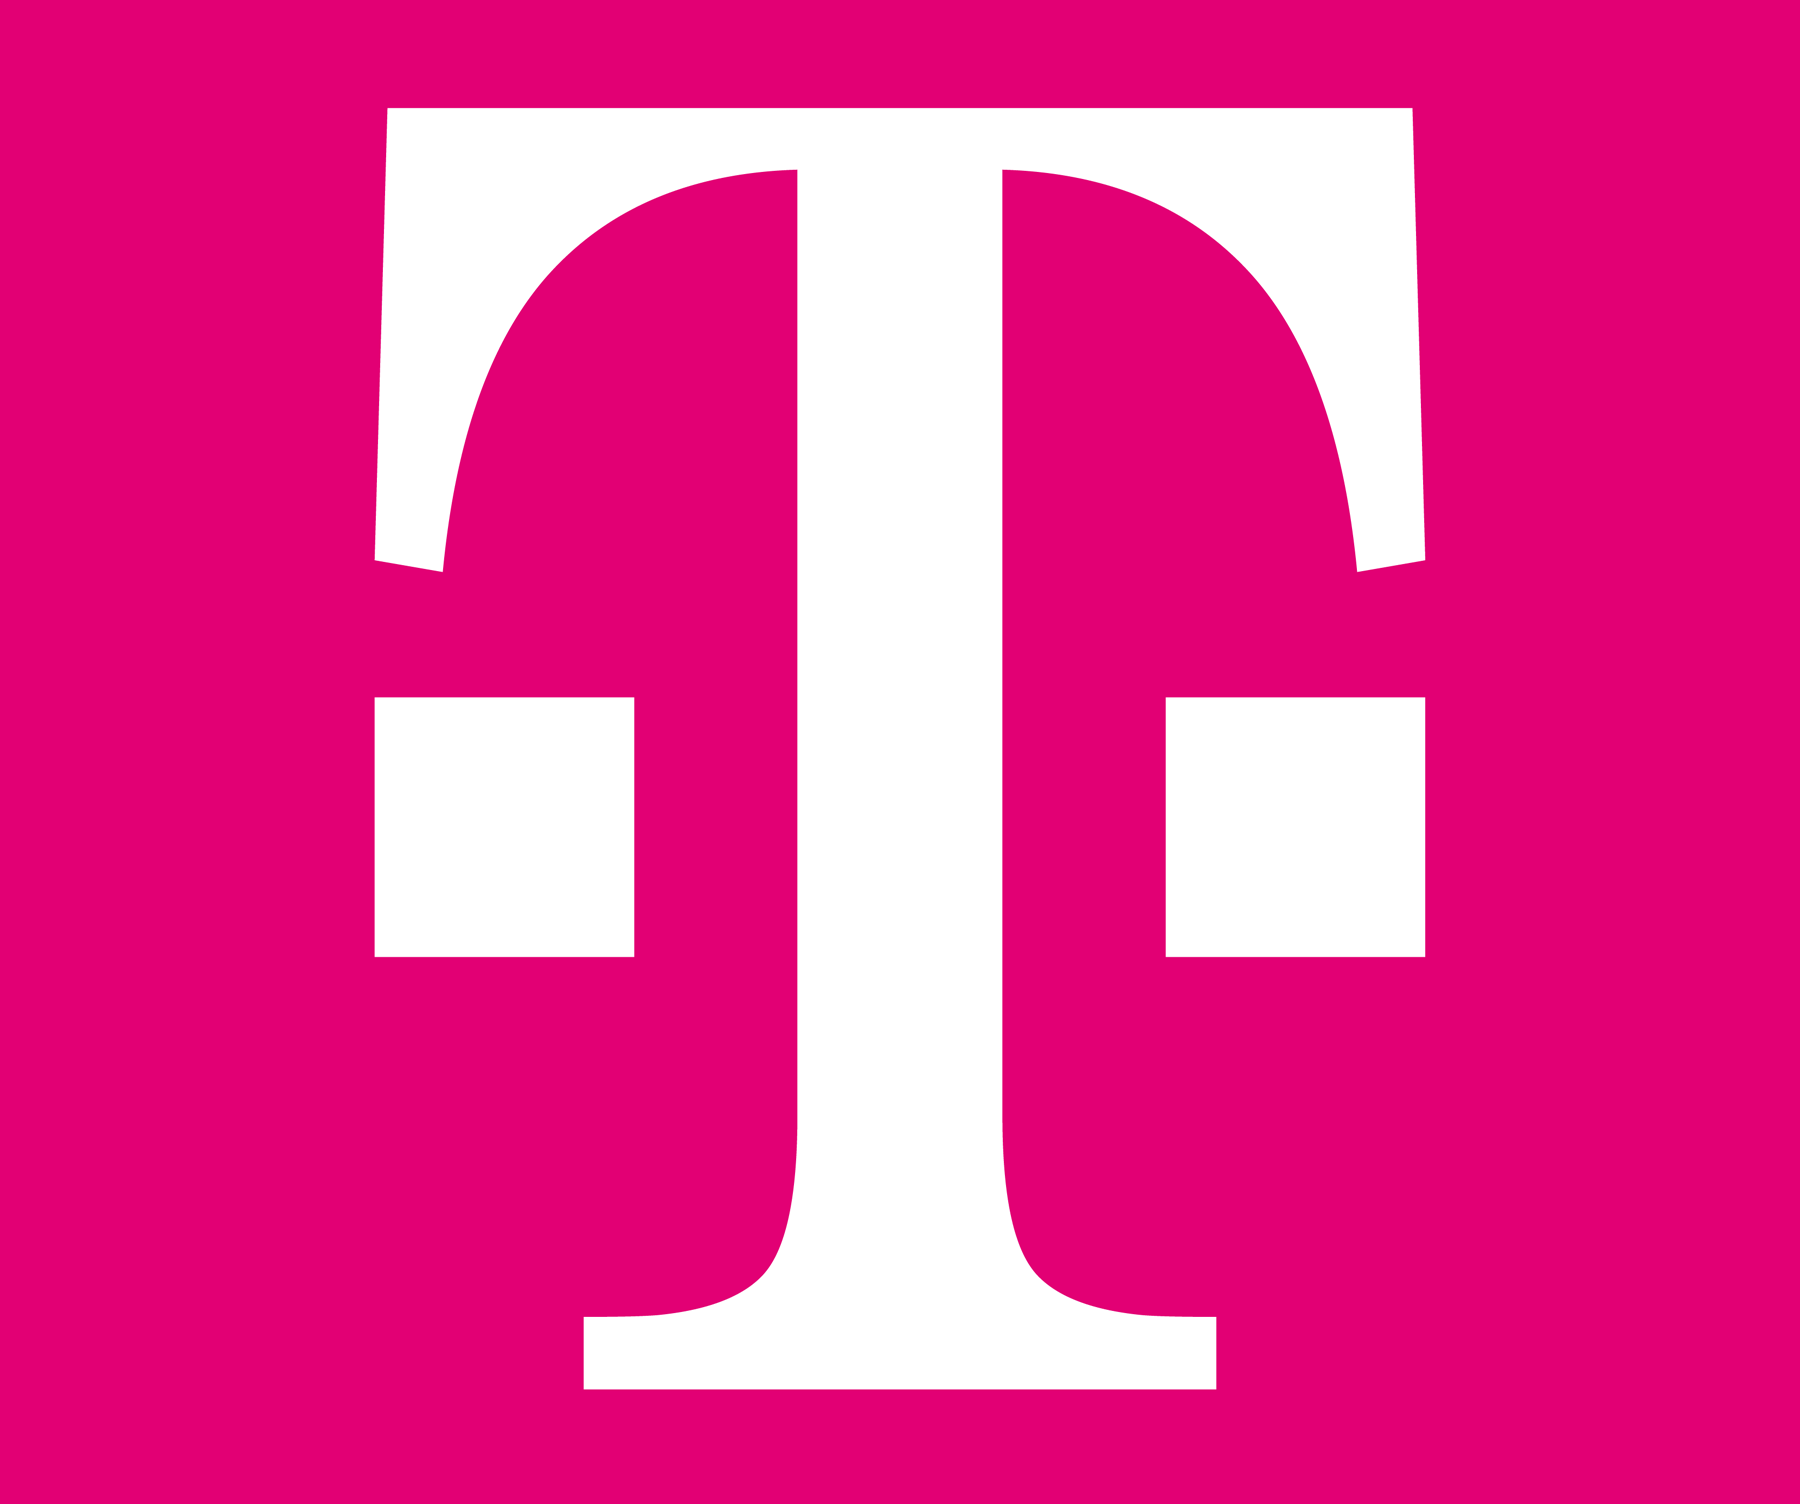 T mobile logo t mobile symbol meaning history and evolution for Mobile logo